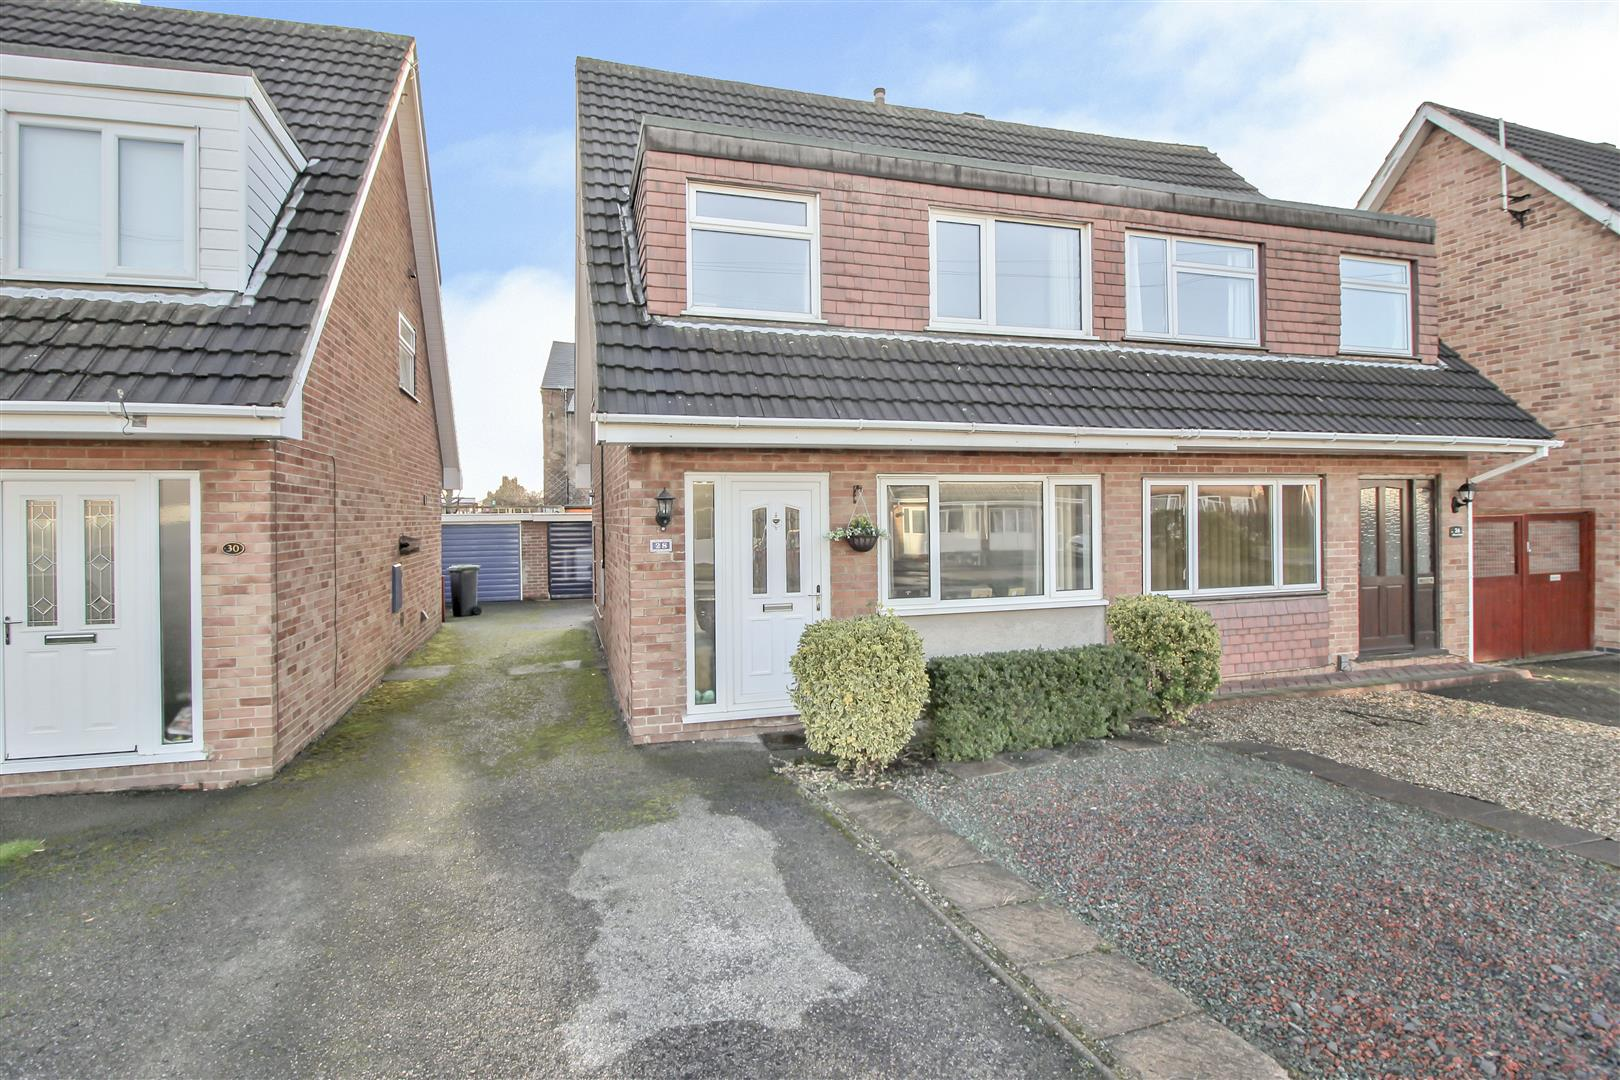 3 Bedrooms Semi Detached House for sale in Alford Close, Beeston Rylands